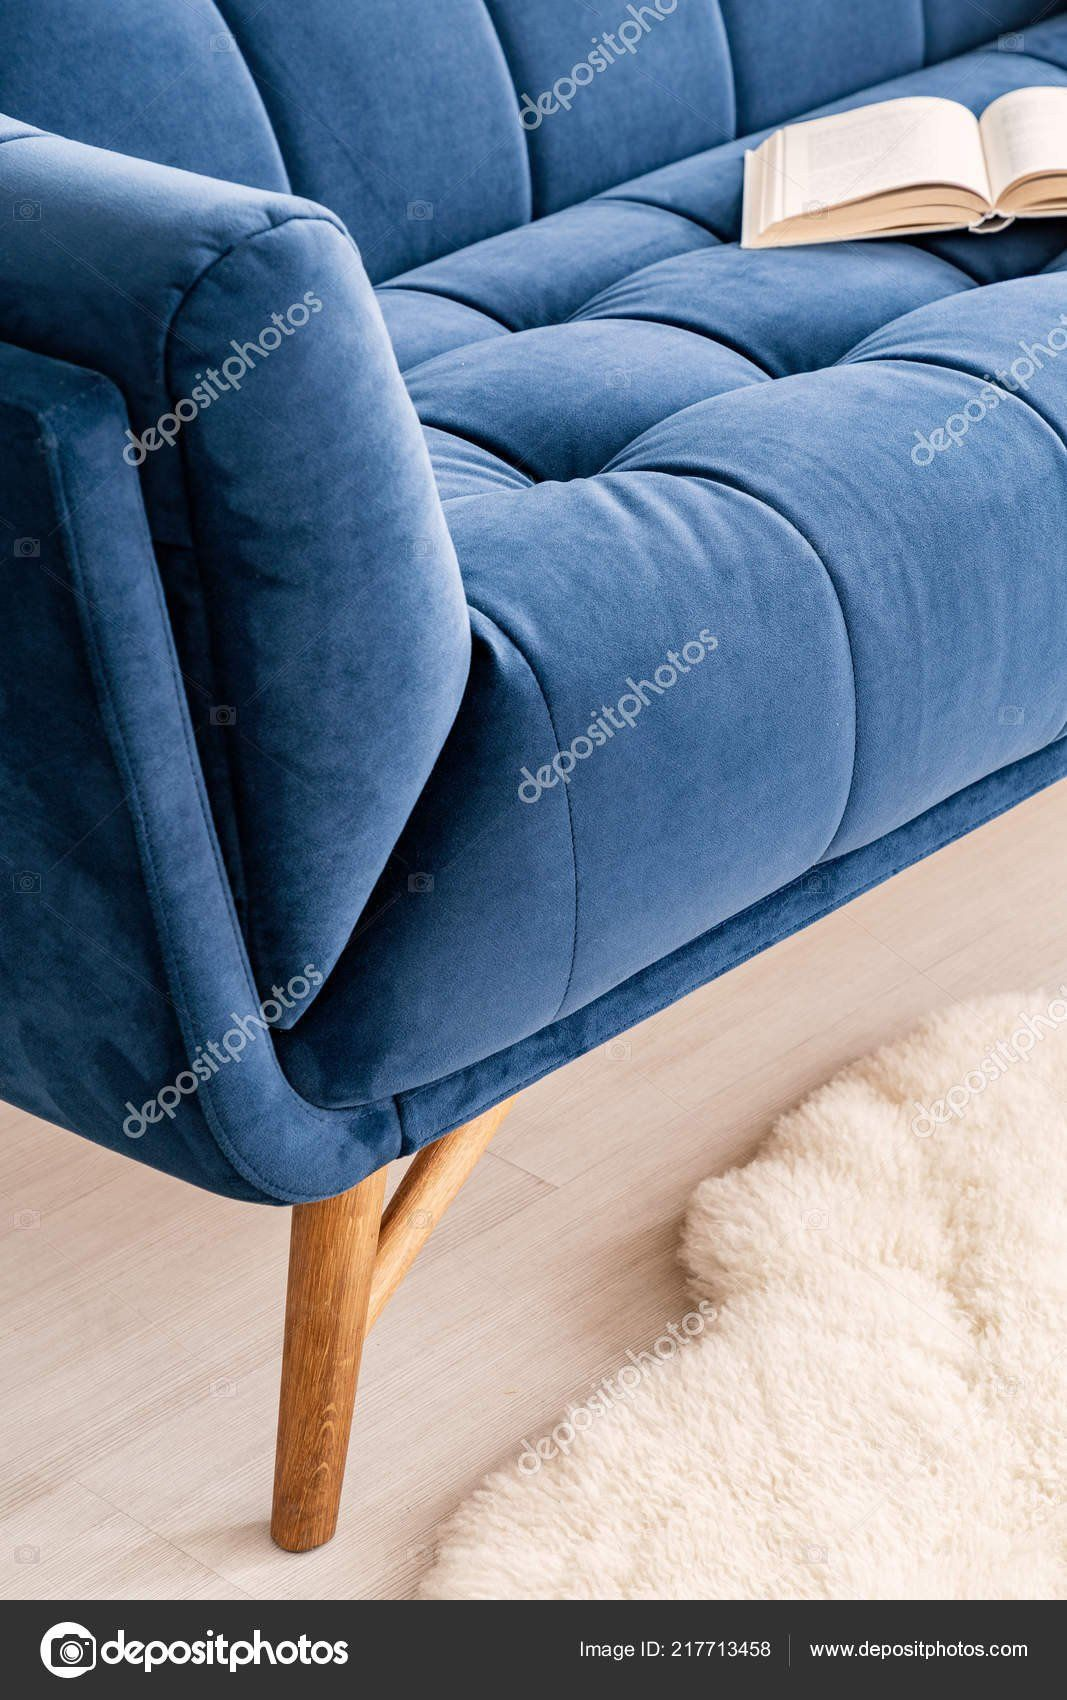 Tapestry Sofa Living Room Furniture Close Part Couch Dressed Luxurious Navy Blue Tapestry Living In 2020 Living Room Sofa Living Room Furniture Furniture